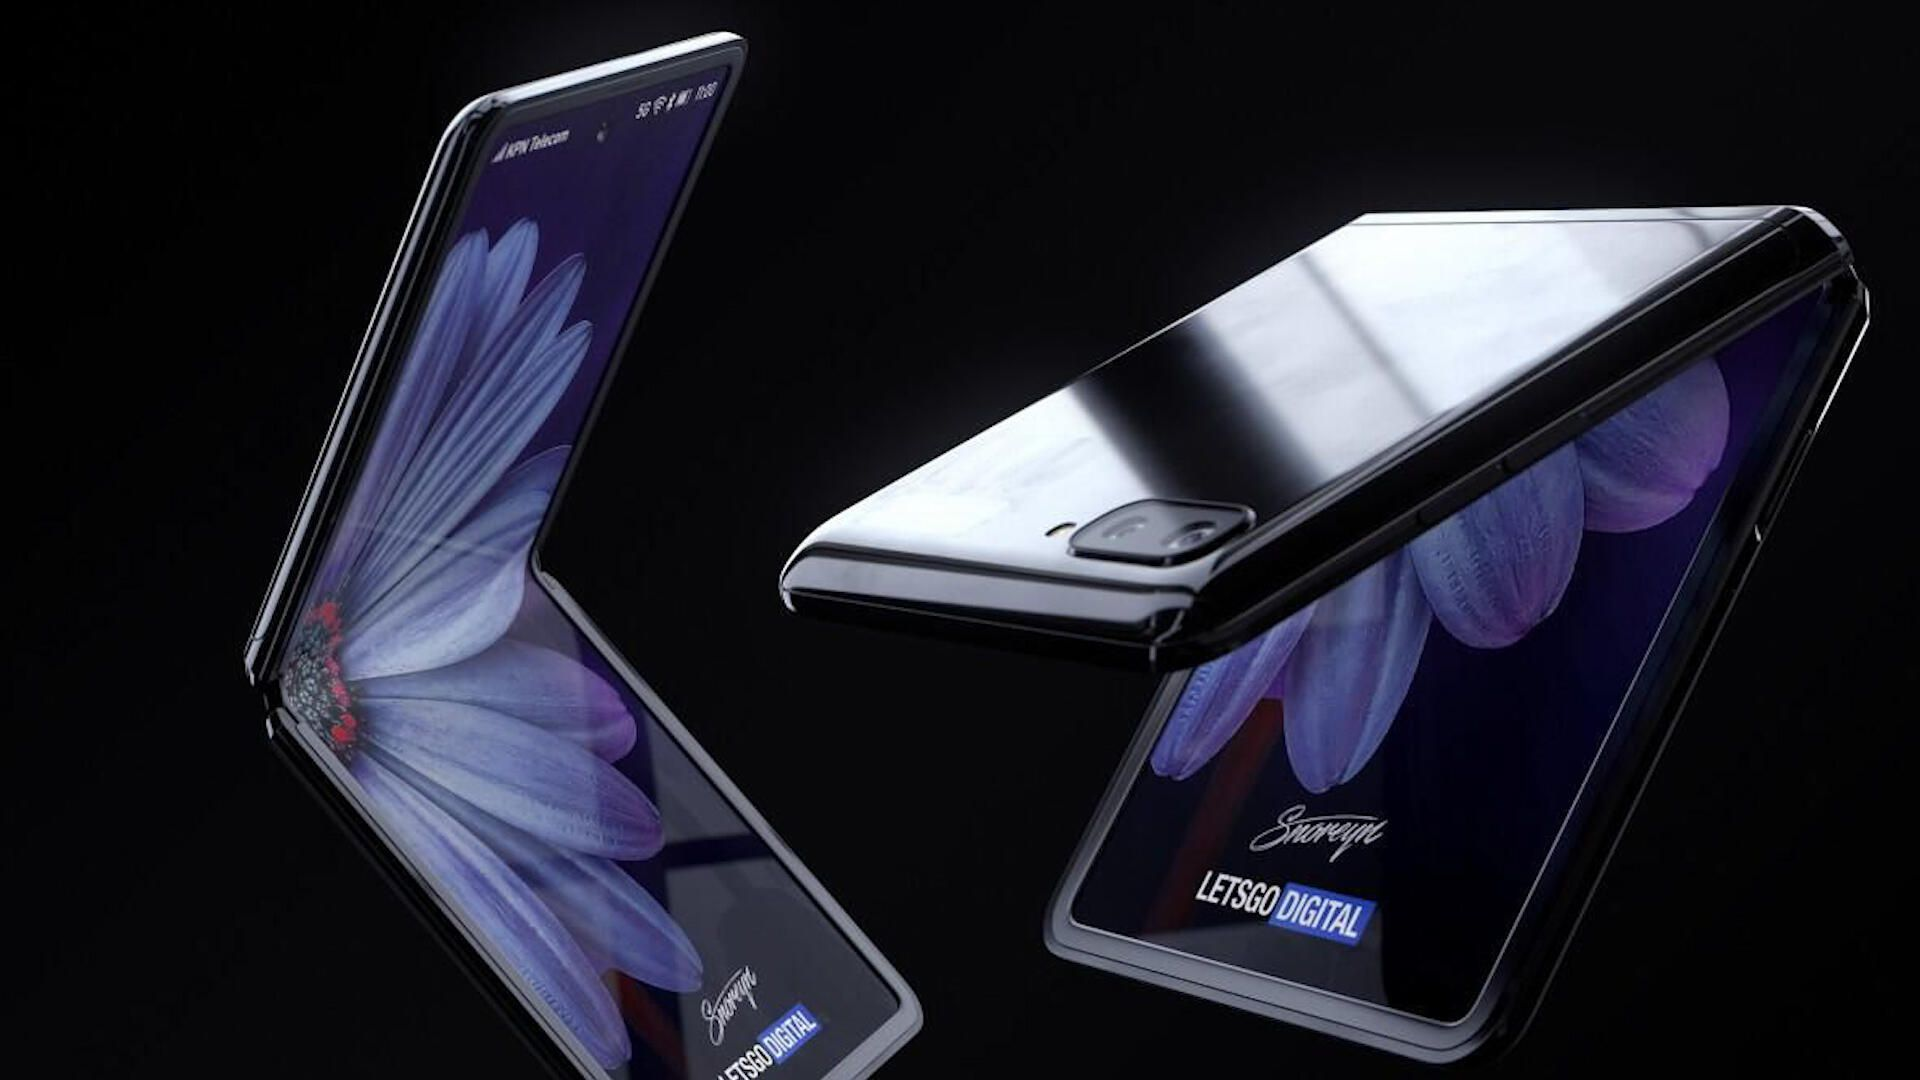 , Samsung's Galaxy Z Flip leaks, Elon Musk makes surprising pivot – Video – Source CNET Tech, iBSC Technologies - learning management services, LMS, Wordpress, CMS, Moodle, IT, Email, Web Hosting, Cloud Server,Cloud Computing